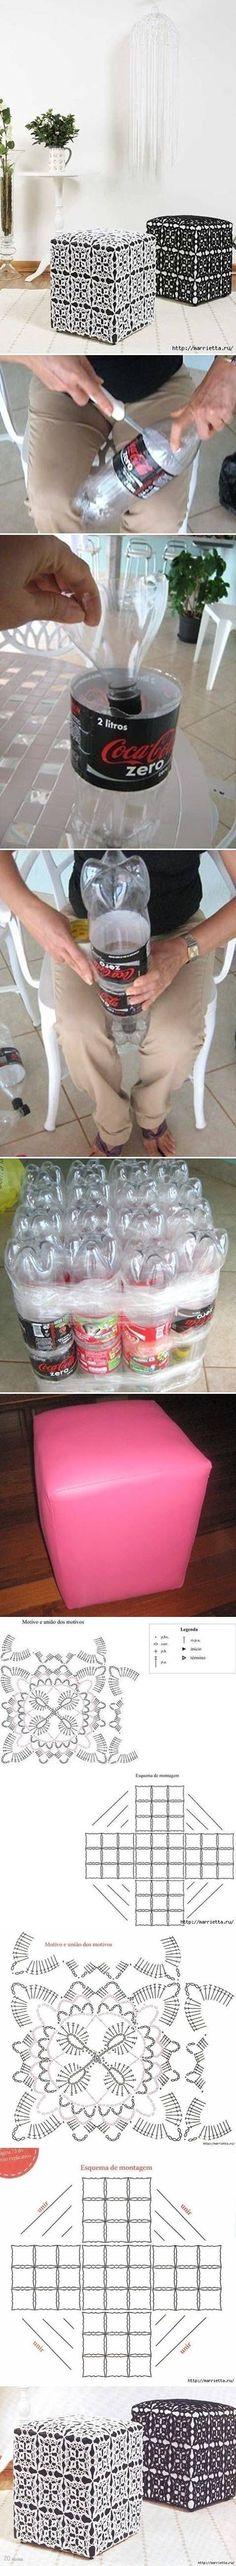 DIY Ottoman Out of Plastic Bottles DIY Projects / UsefulDIY.com